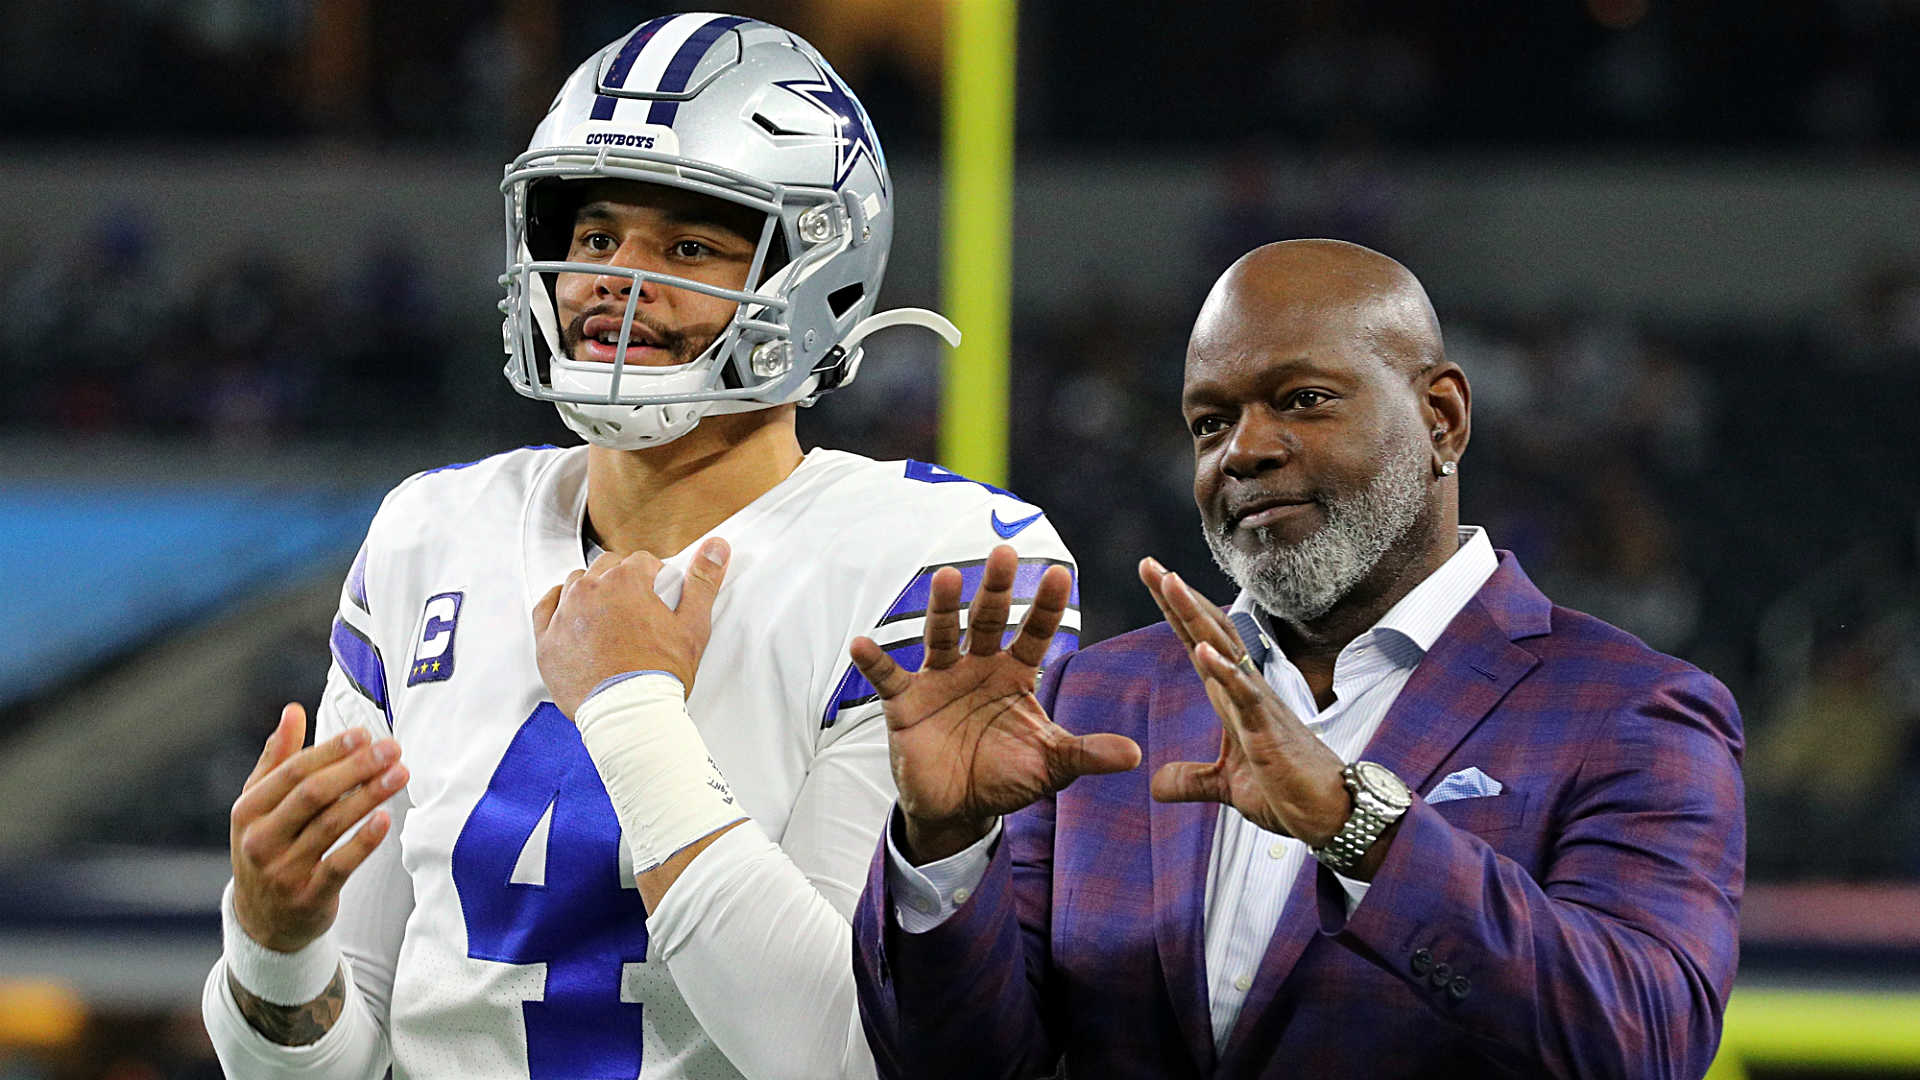 Dak Prescott can ignore Emmitt Smith; QB won't accept a discounted contract from Cowboys, of all teams